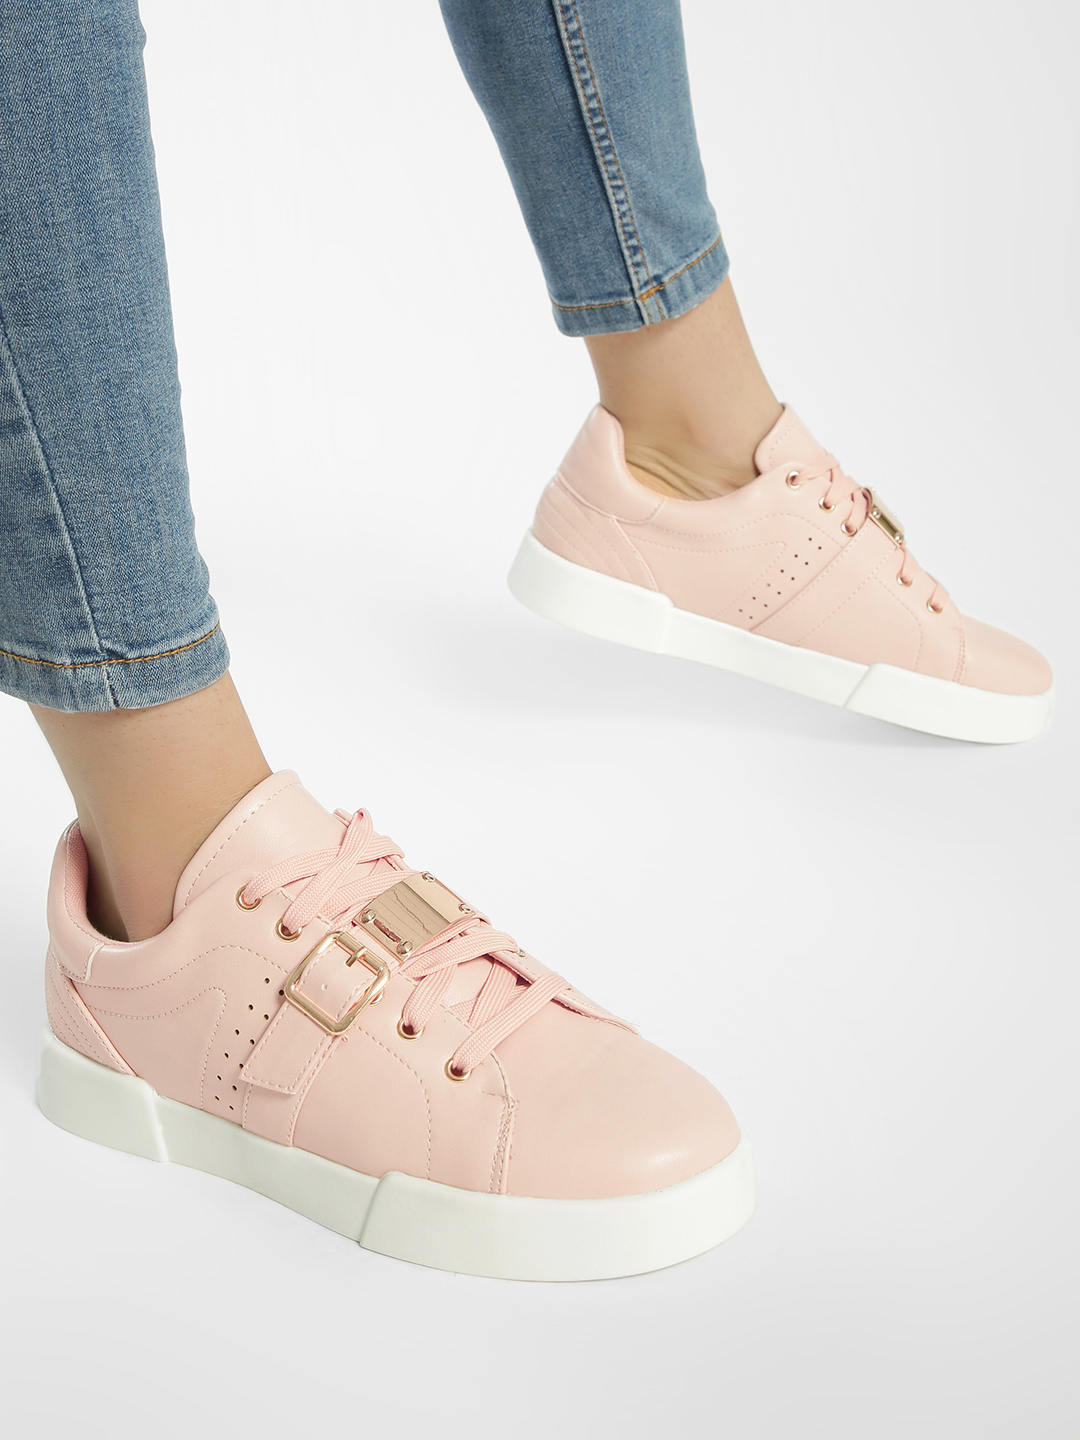 My Foot Couture Blush pink Buckle Detail Lace Up Sneakers 1